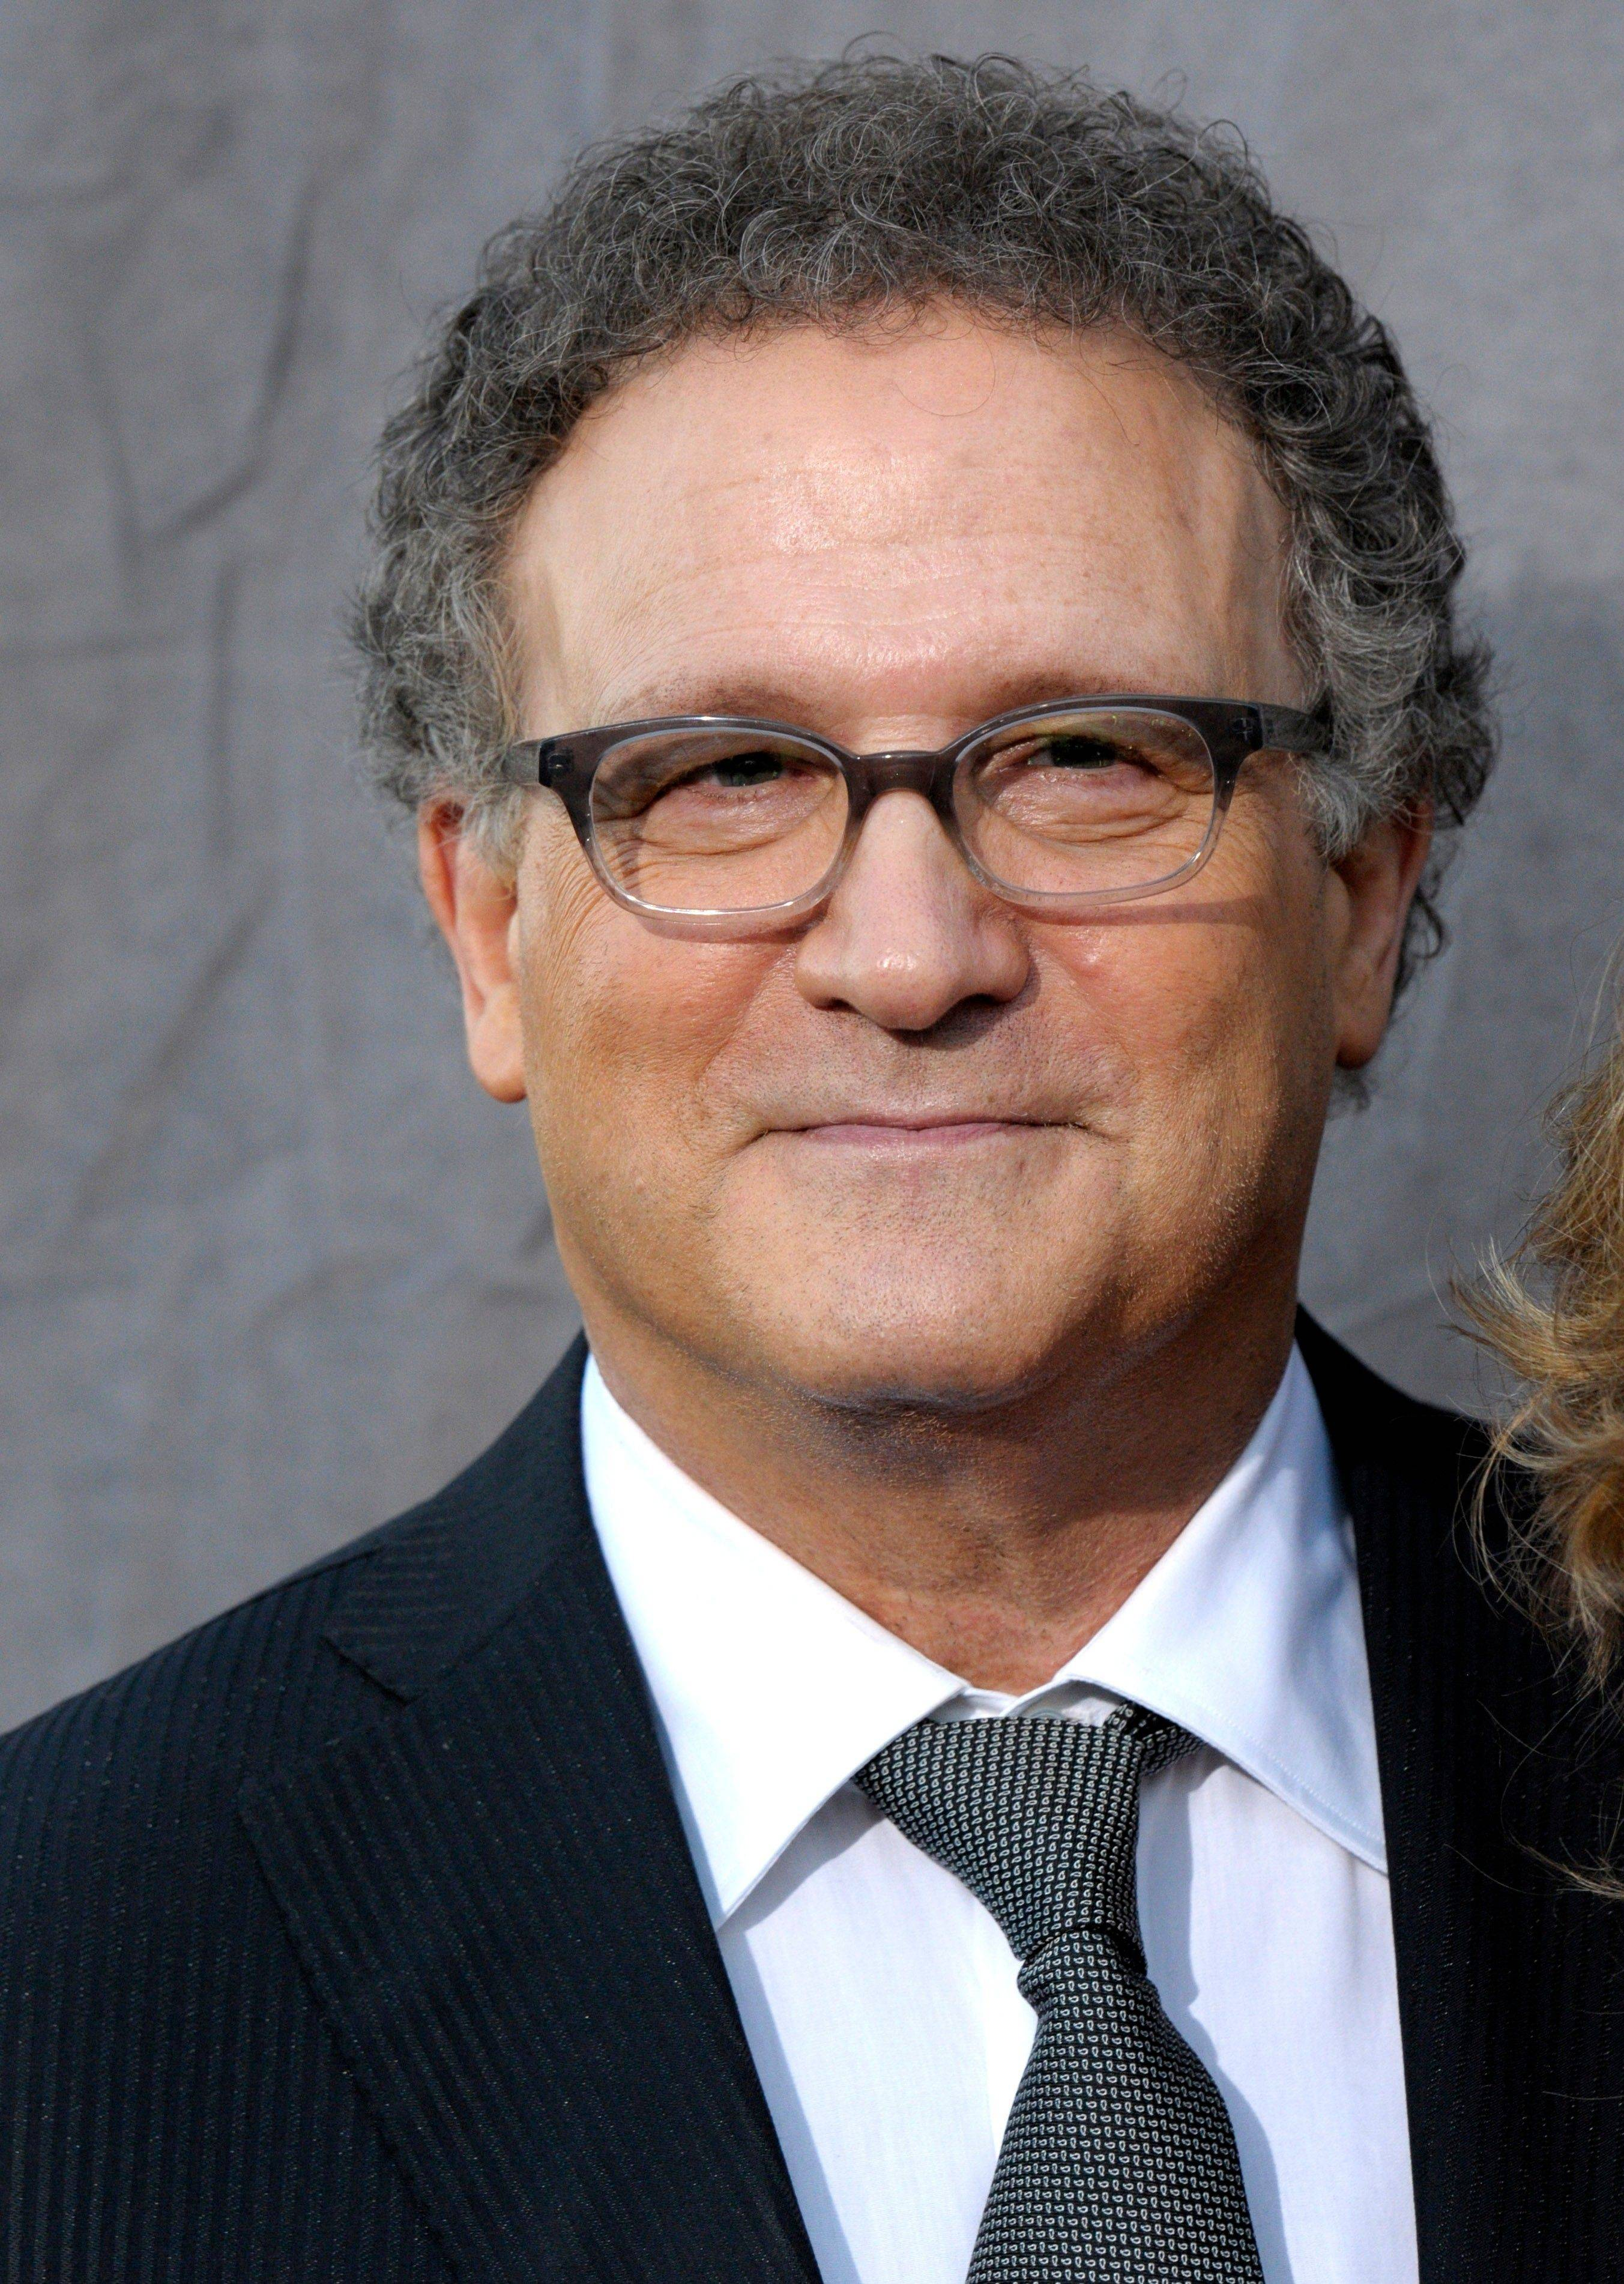 "In this Jan. 12, 2012 file photo, actor Albert Brooks arrives at the 17th Annual Critics' Choice Movie Awards in Los Angeles. Brooks has been hailed for this against-type performance as a violent gangster in the neo-noir thriller ""Drive"". But Brooks was not nominated for an Academy Award for best supporting actor."